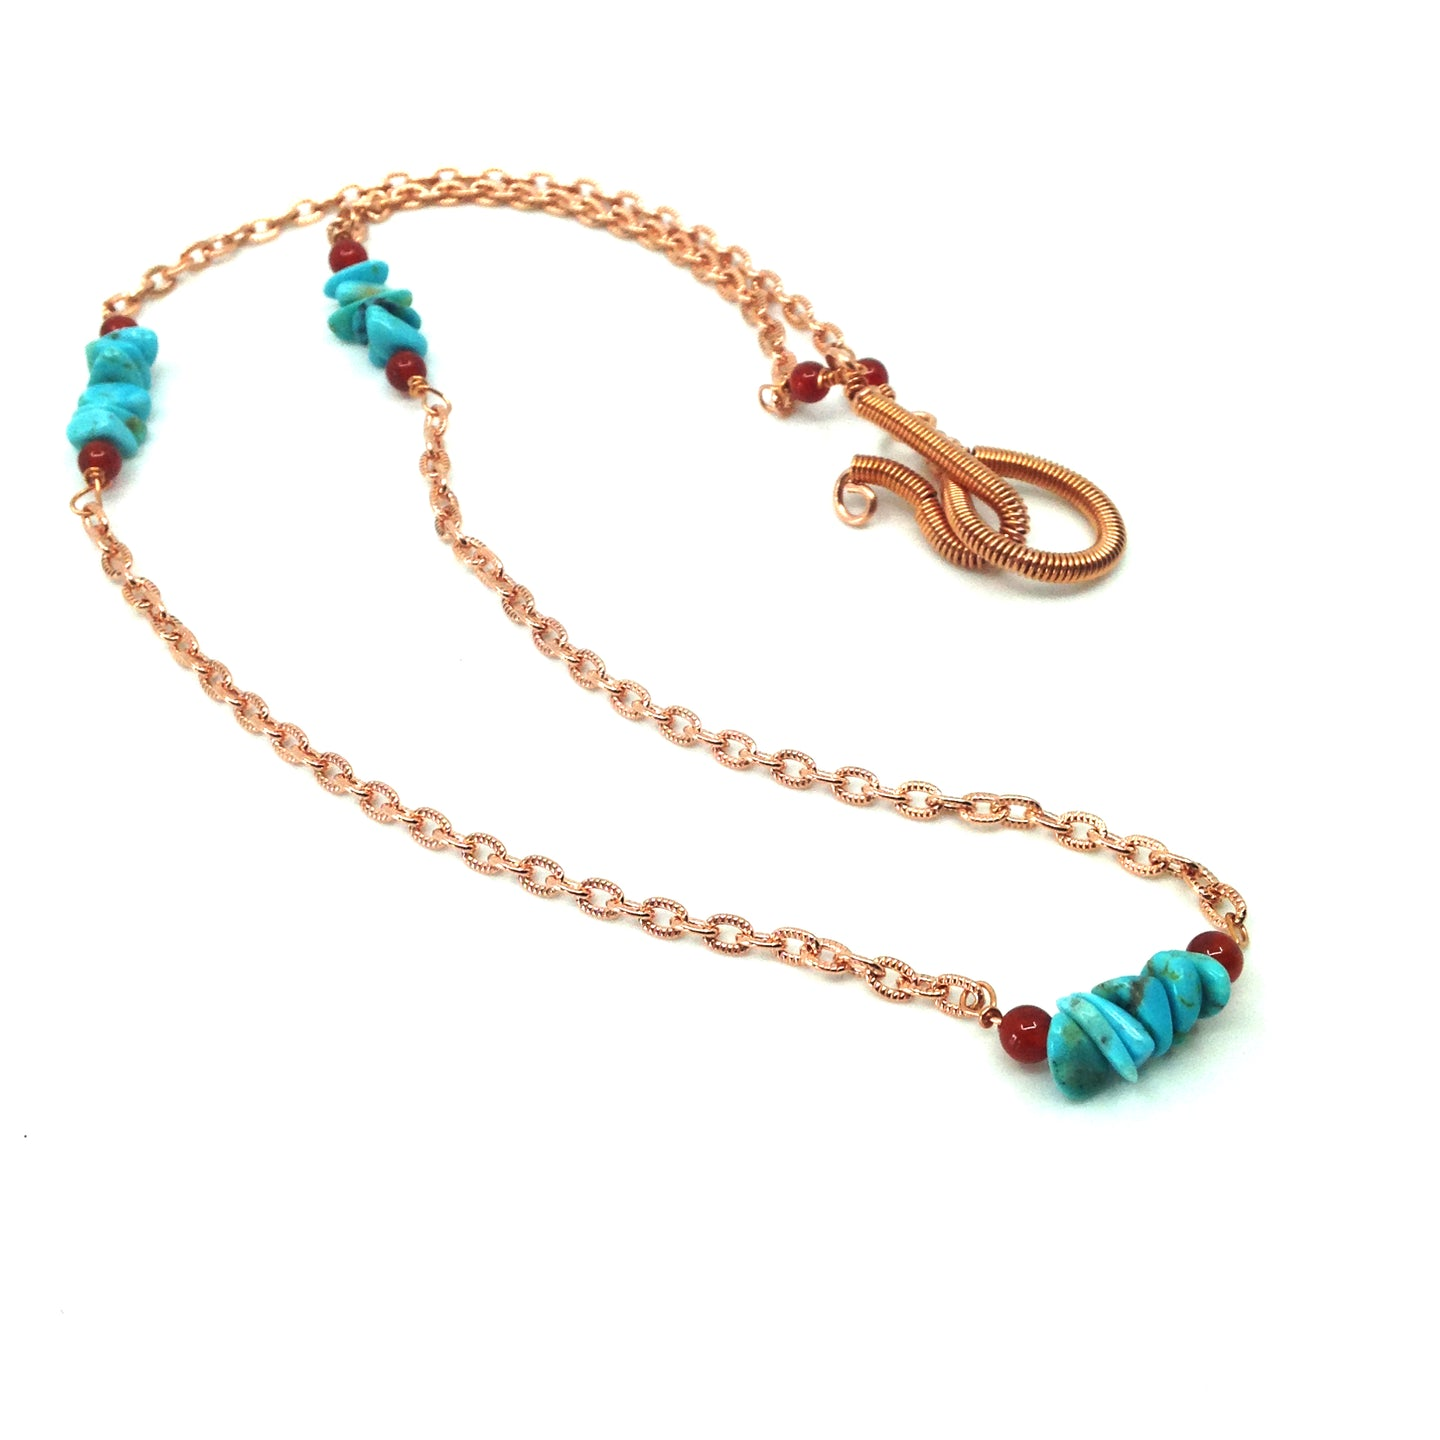 DCG008-C-24 24 inch layering necklace in copper and turquoise